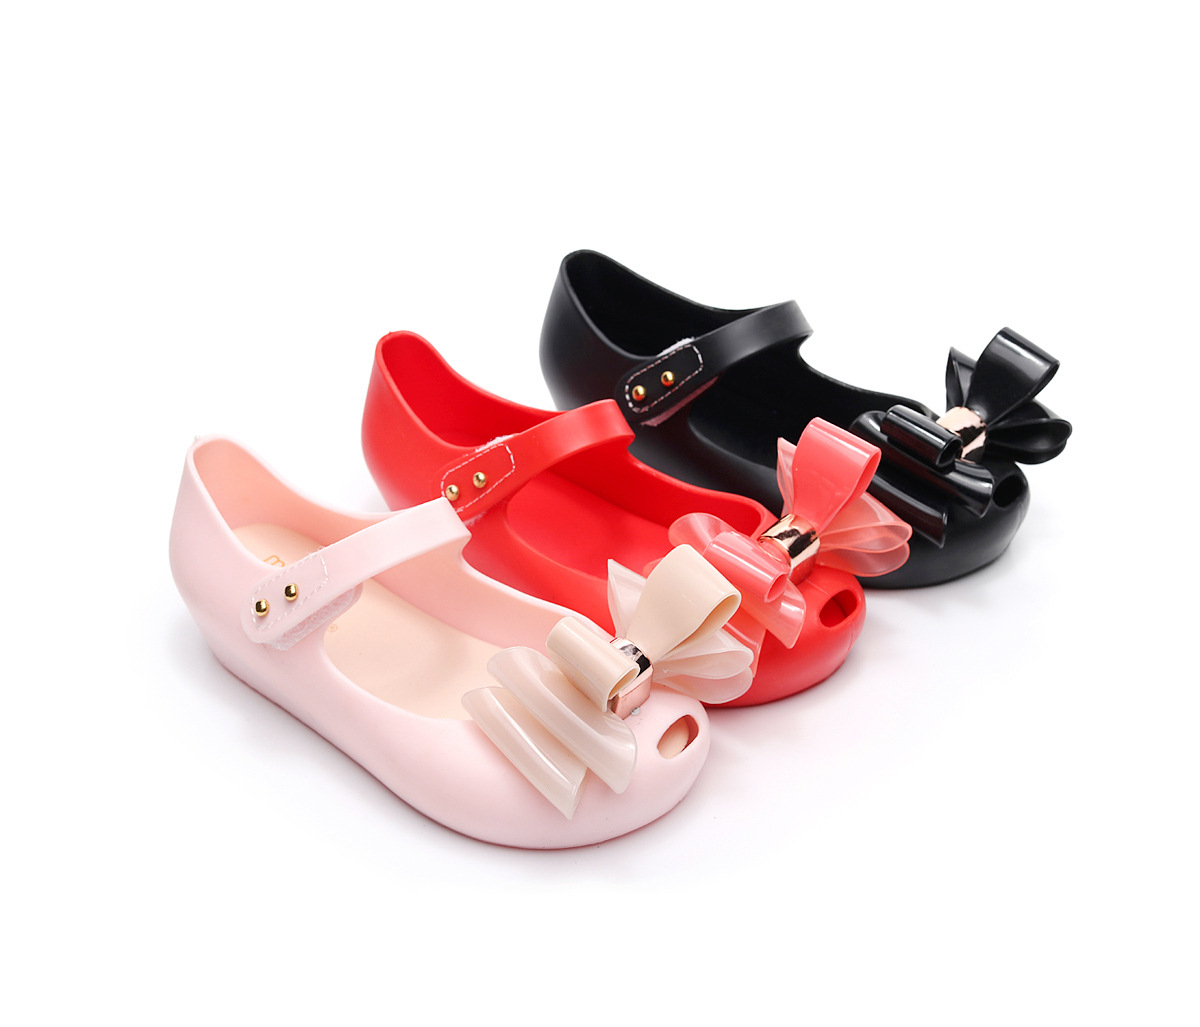 New Baby Summer Shoes Children Infant Baby Girls Kids Princess Sandals Shoes Non-Slip Plastic Bow Buckle Jelly Shoes 1-6Y